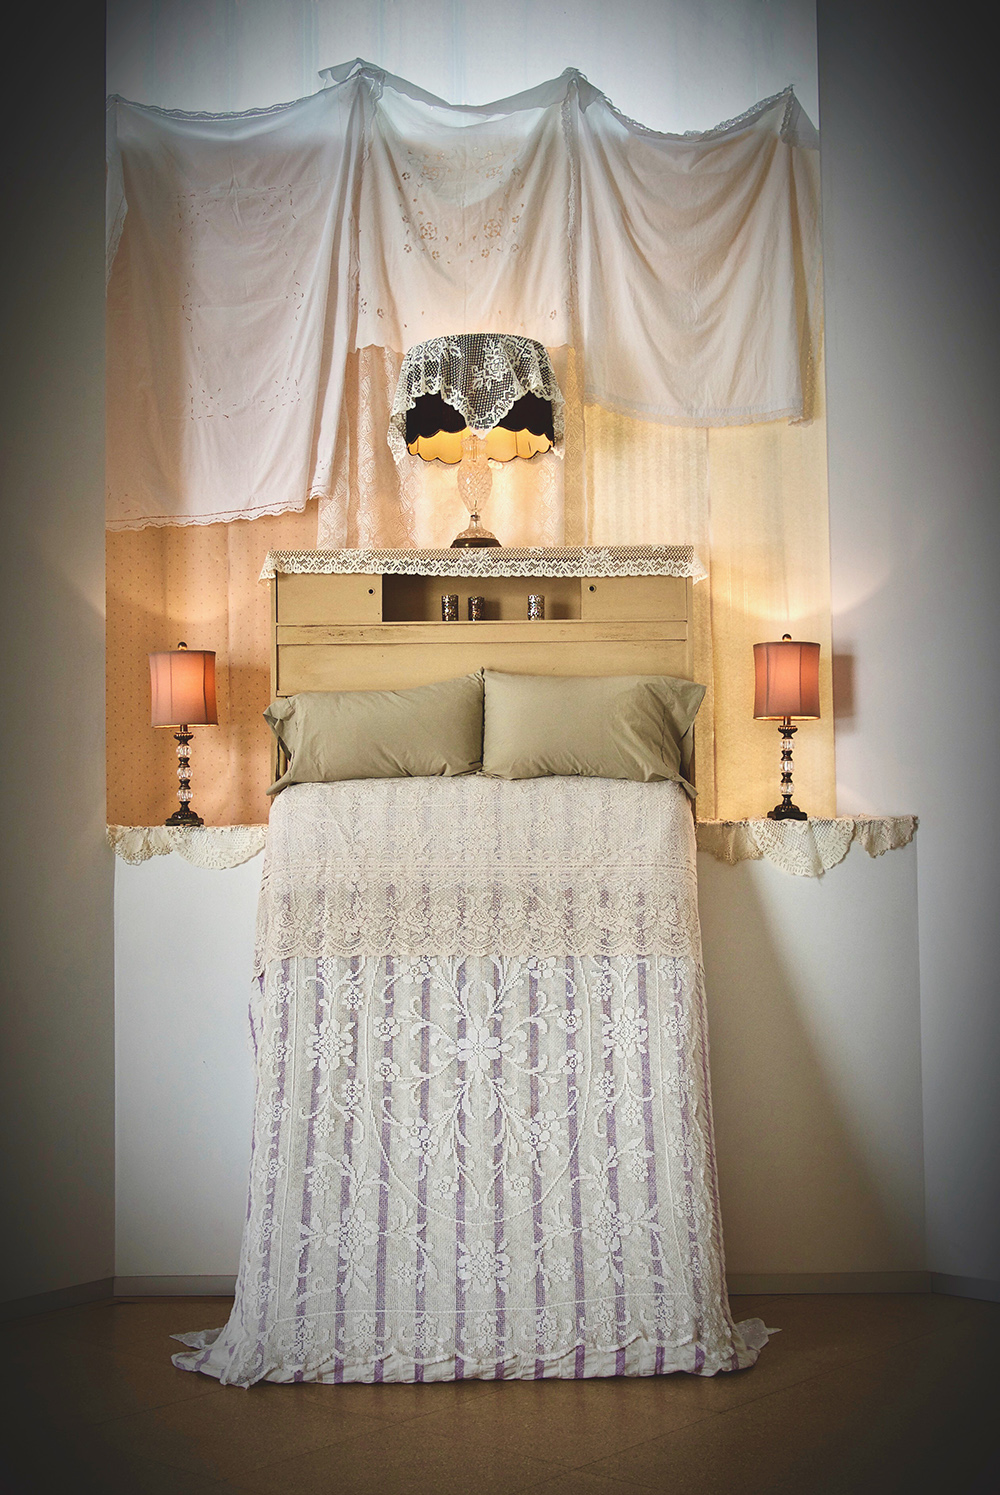 Bed upright on wall with lace coverlet, pillows, headboard, three lamps and window covering